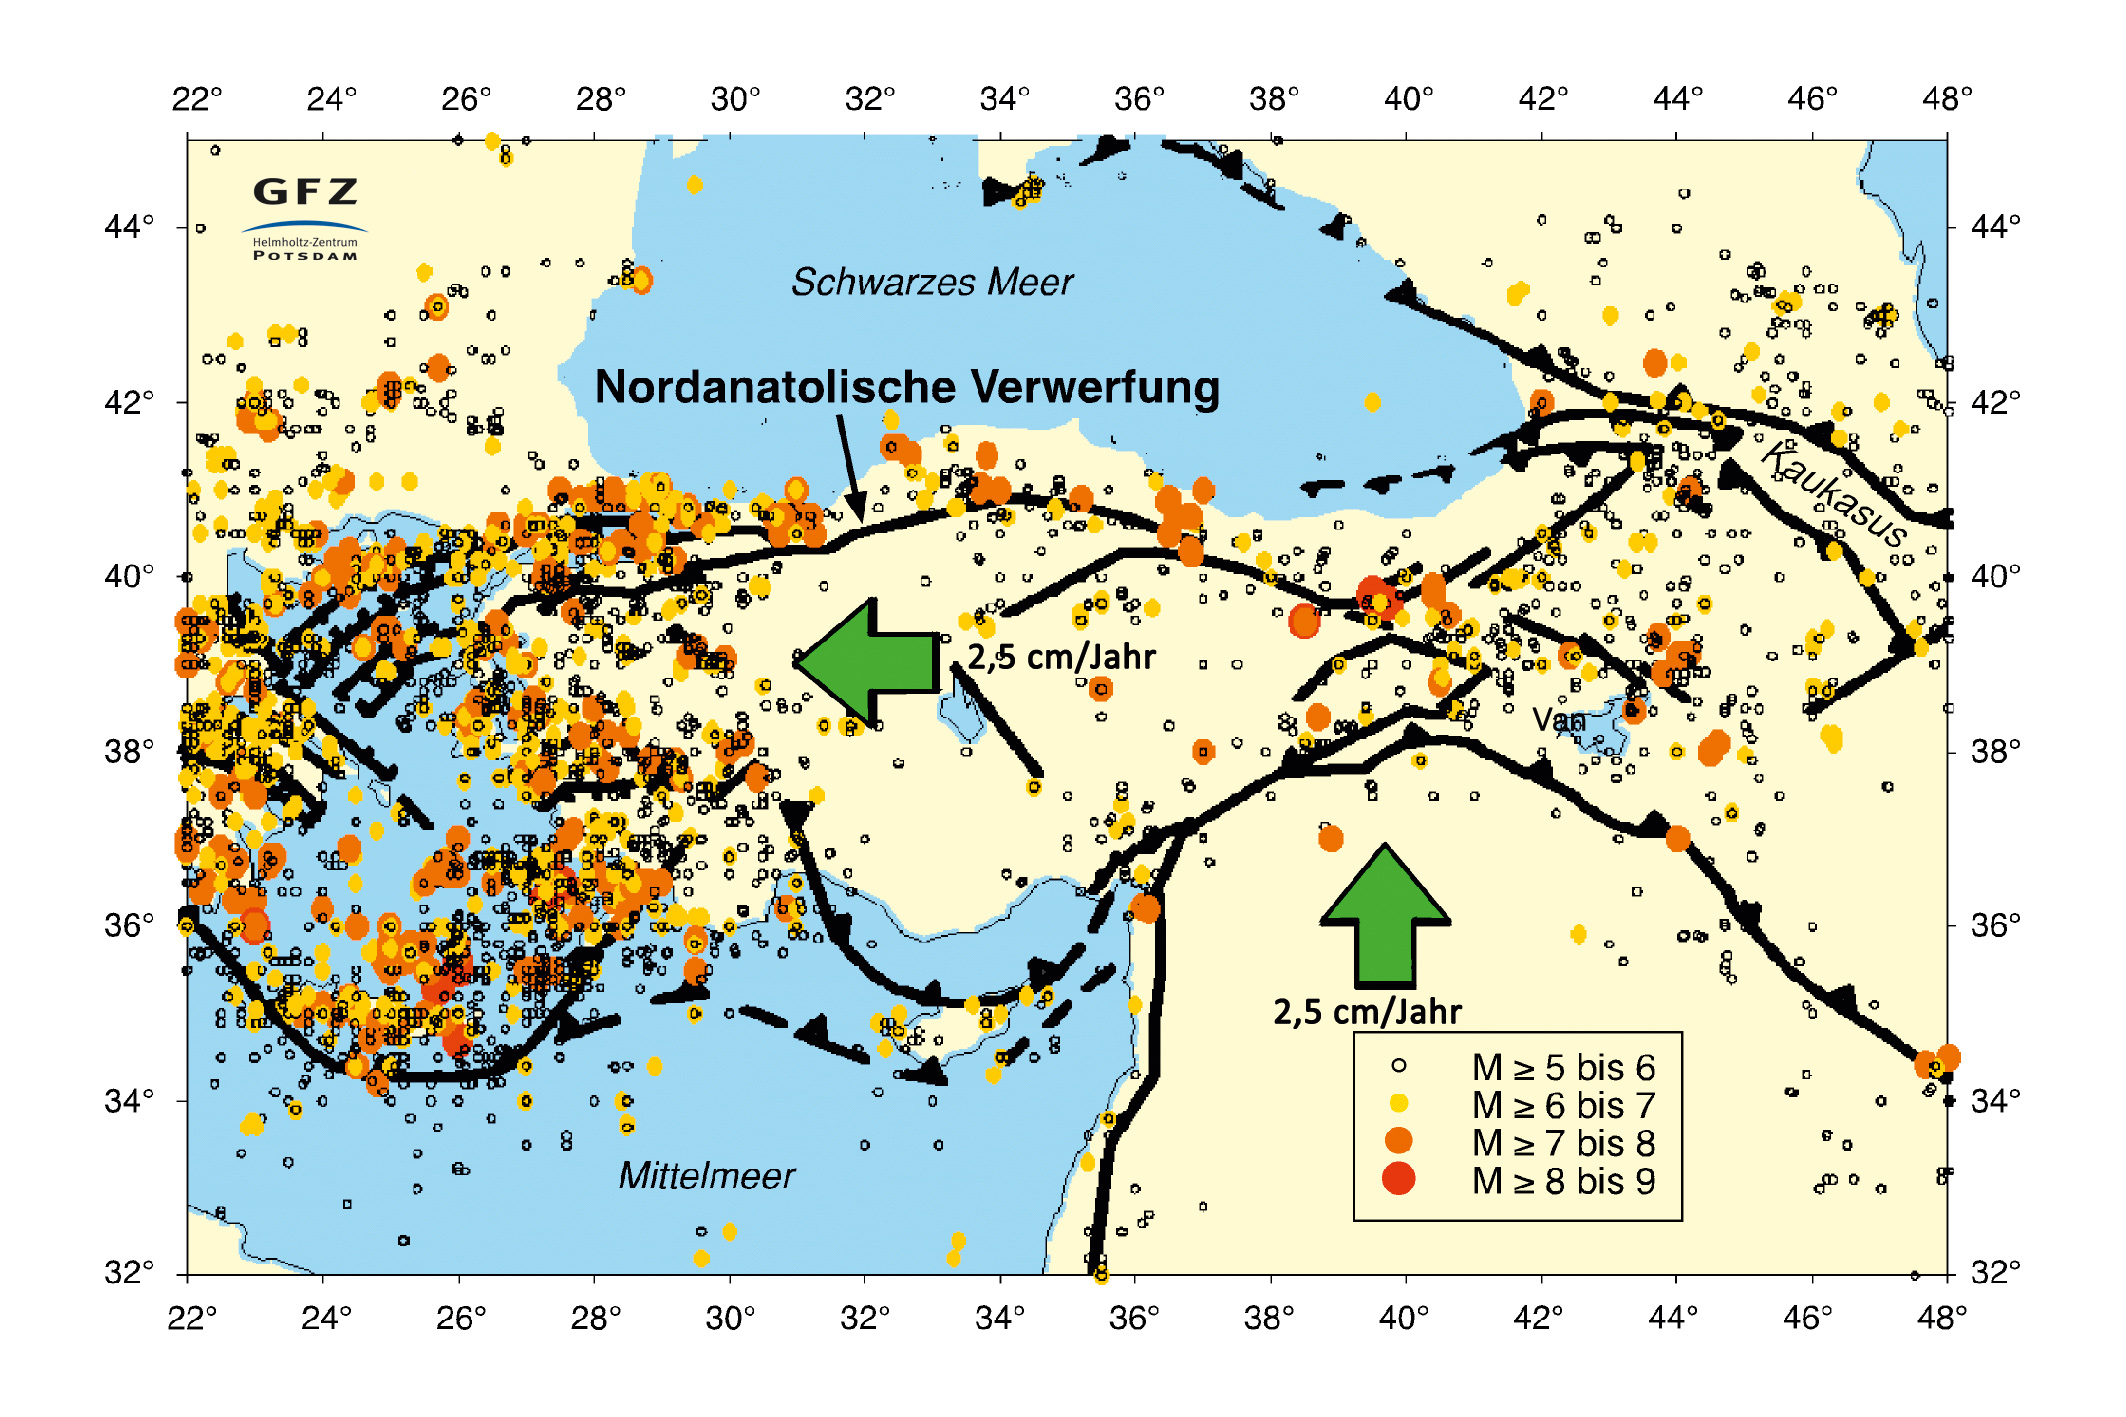 Istanbulthe earthquake risk of a megacity seismic risk in turkey epicentres and main fault zones gfz deutsches geoforschungszentrum gumiabroncs Gallery